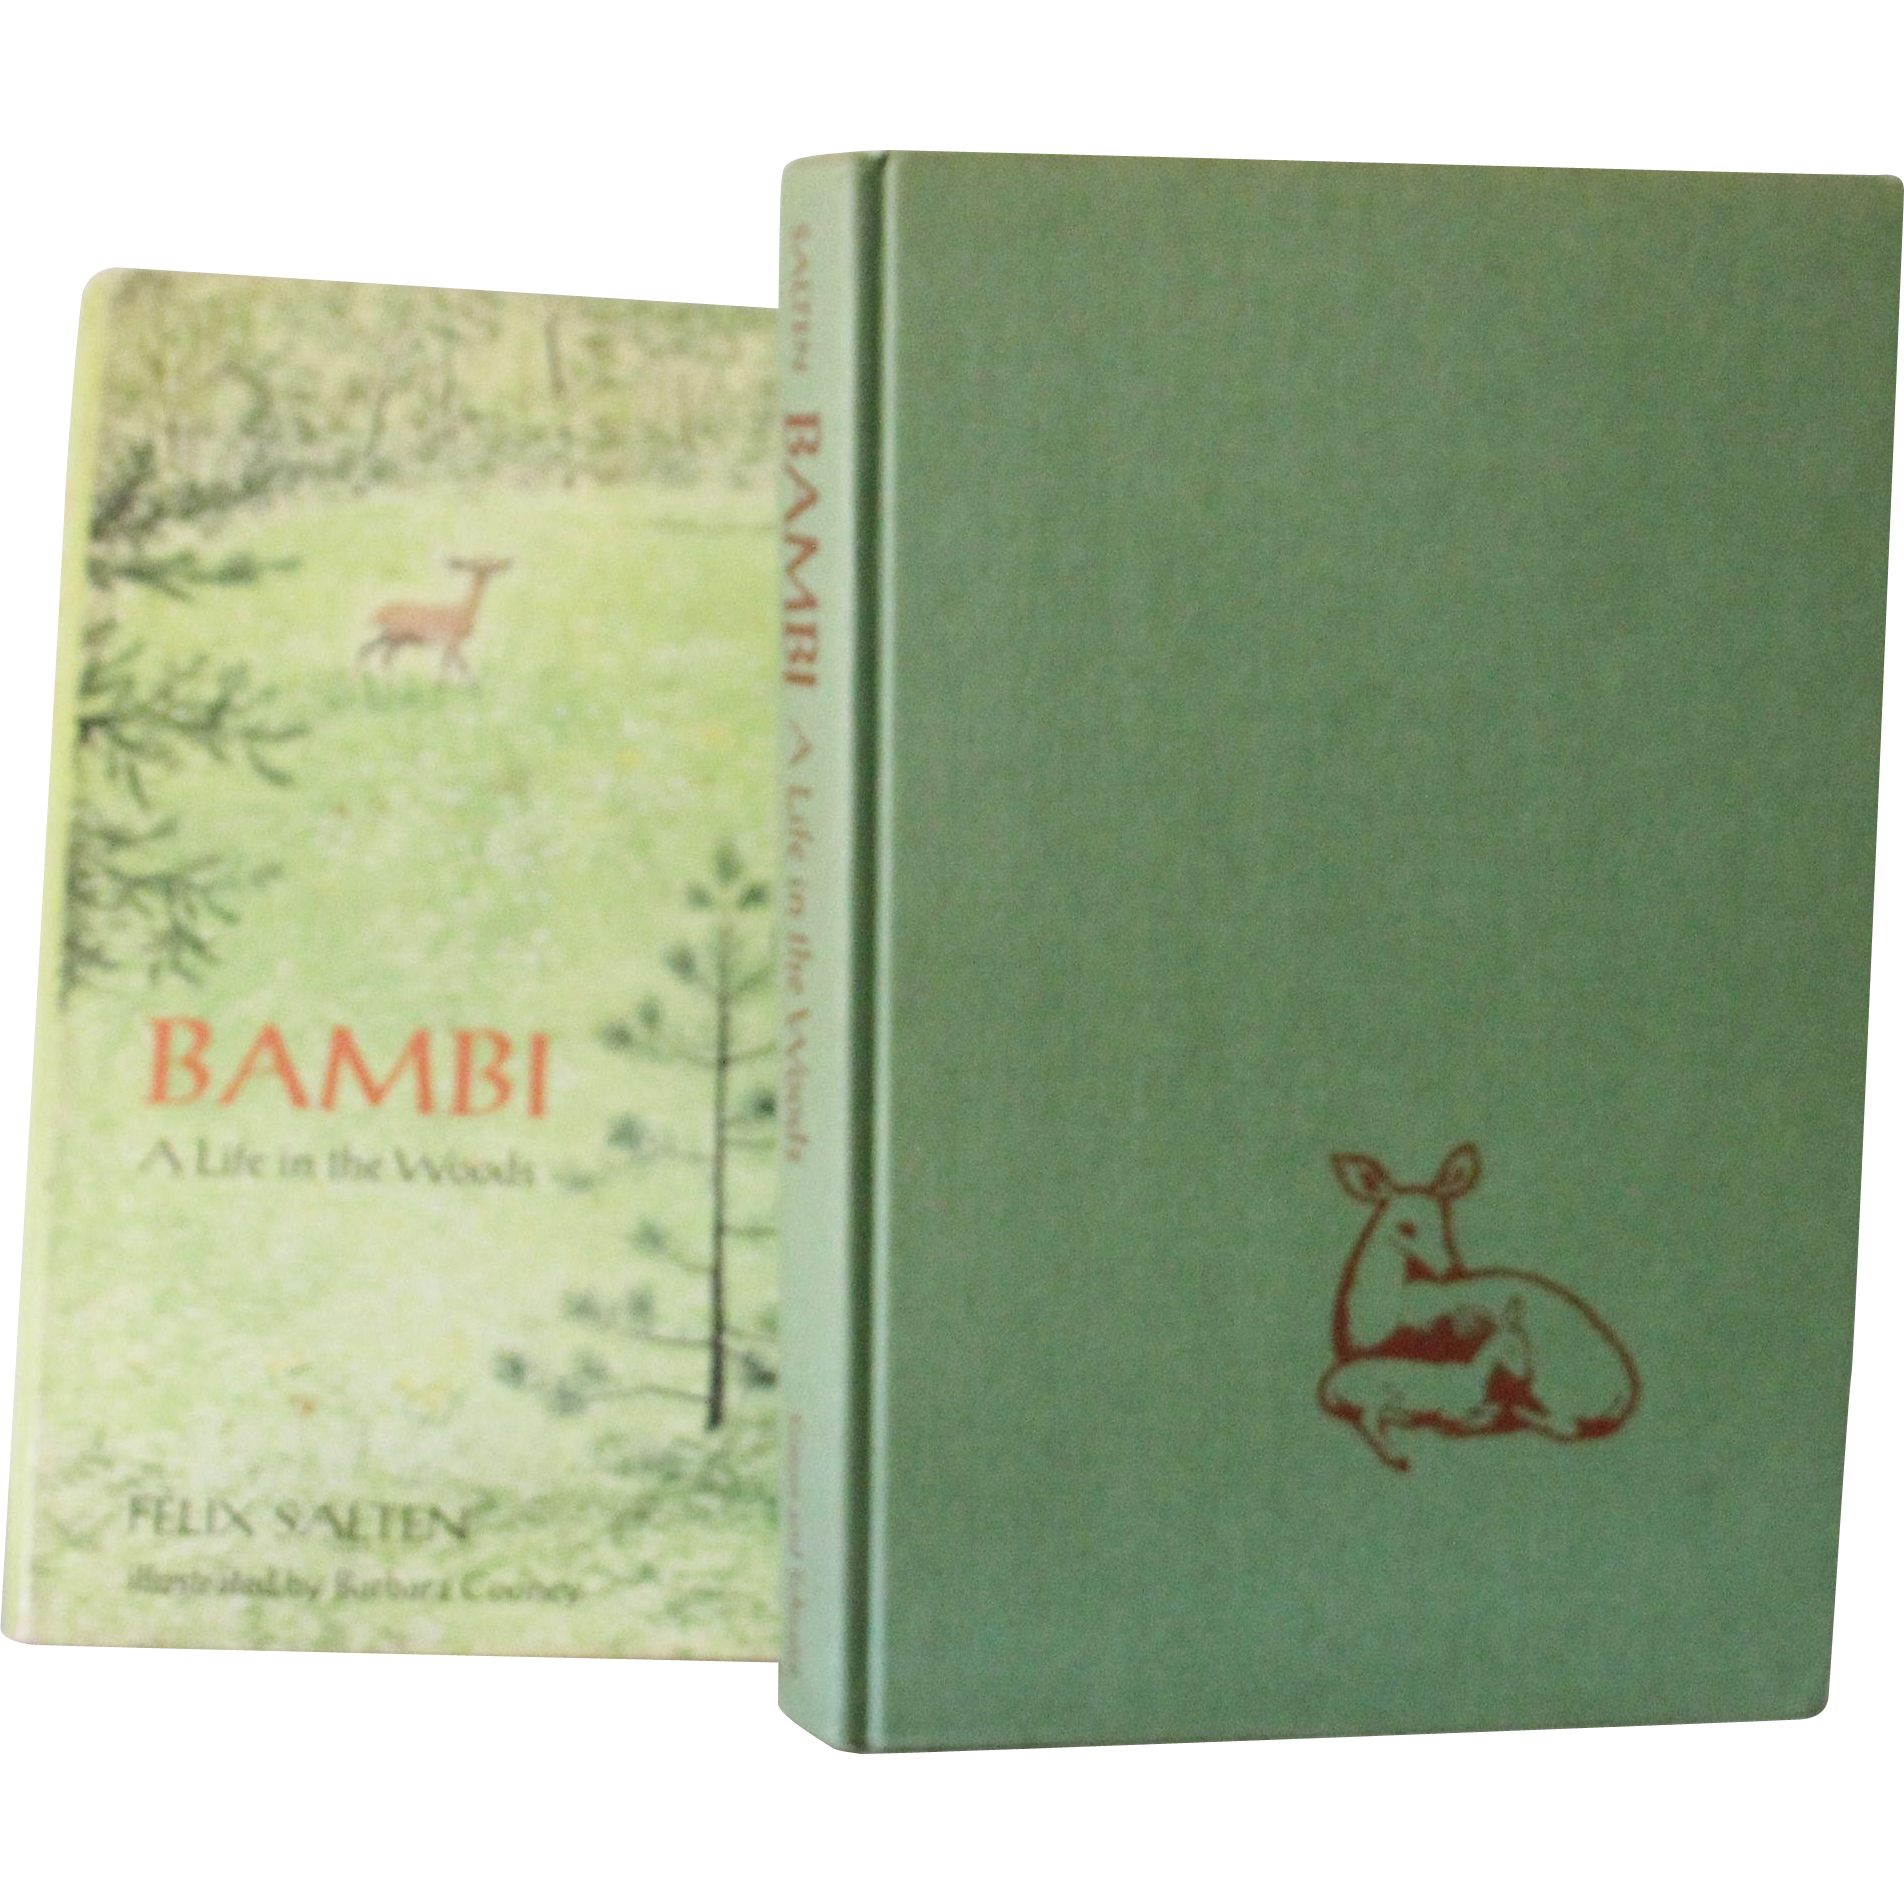 Bambi A Life in the Woods 1st Edition 1970 Illustrated by Barbara Cooney